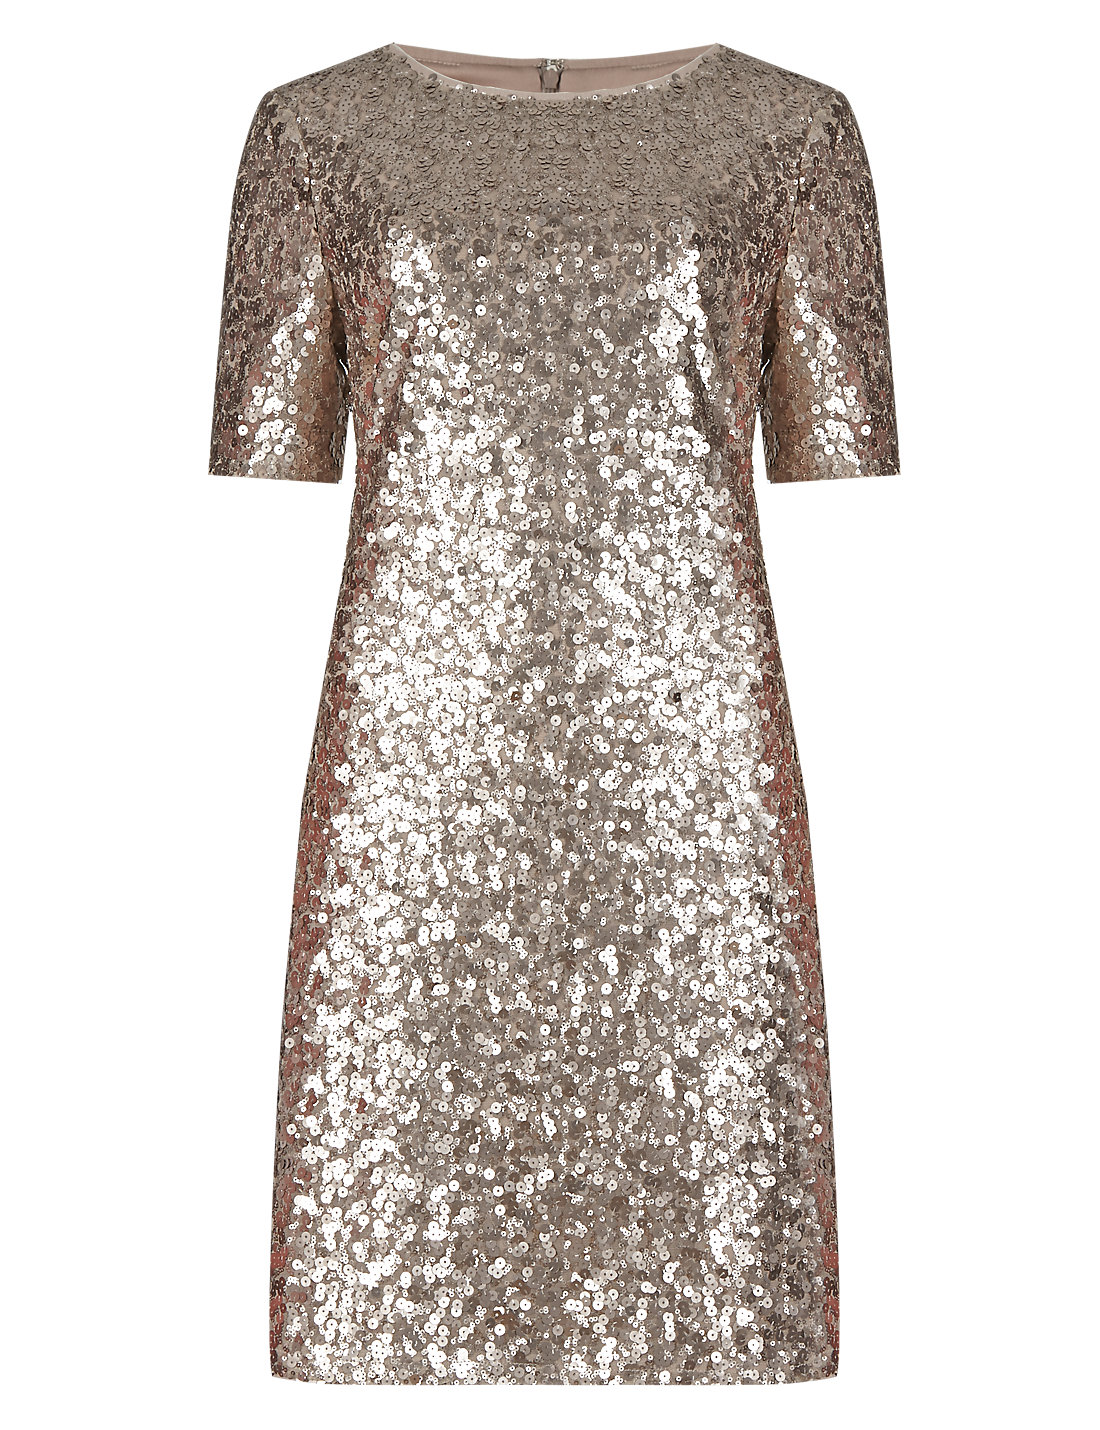 All-Over Sequin Embellished Tunic Dress | M&S